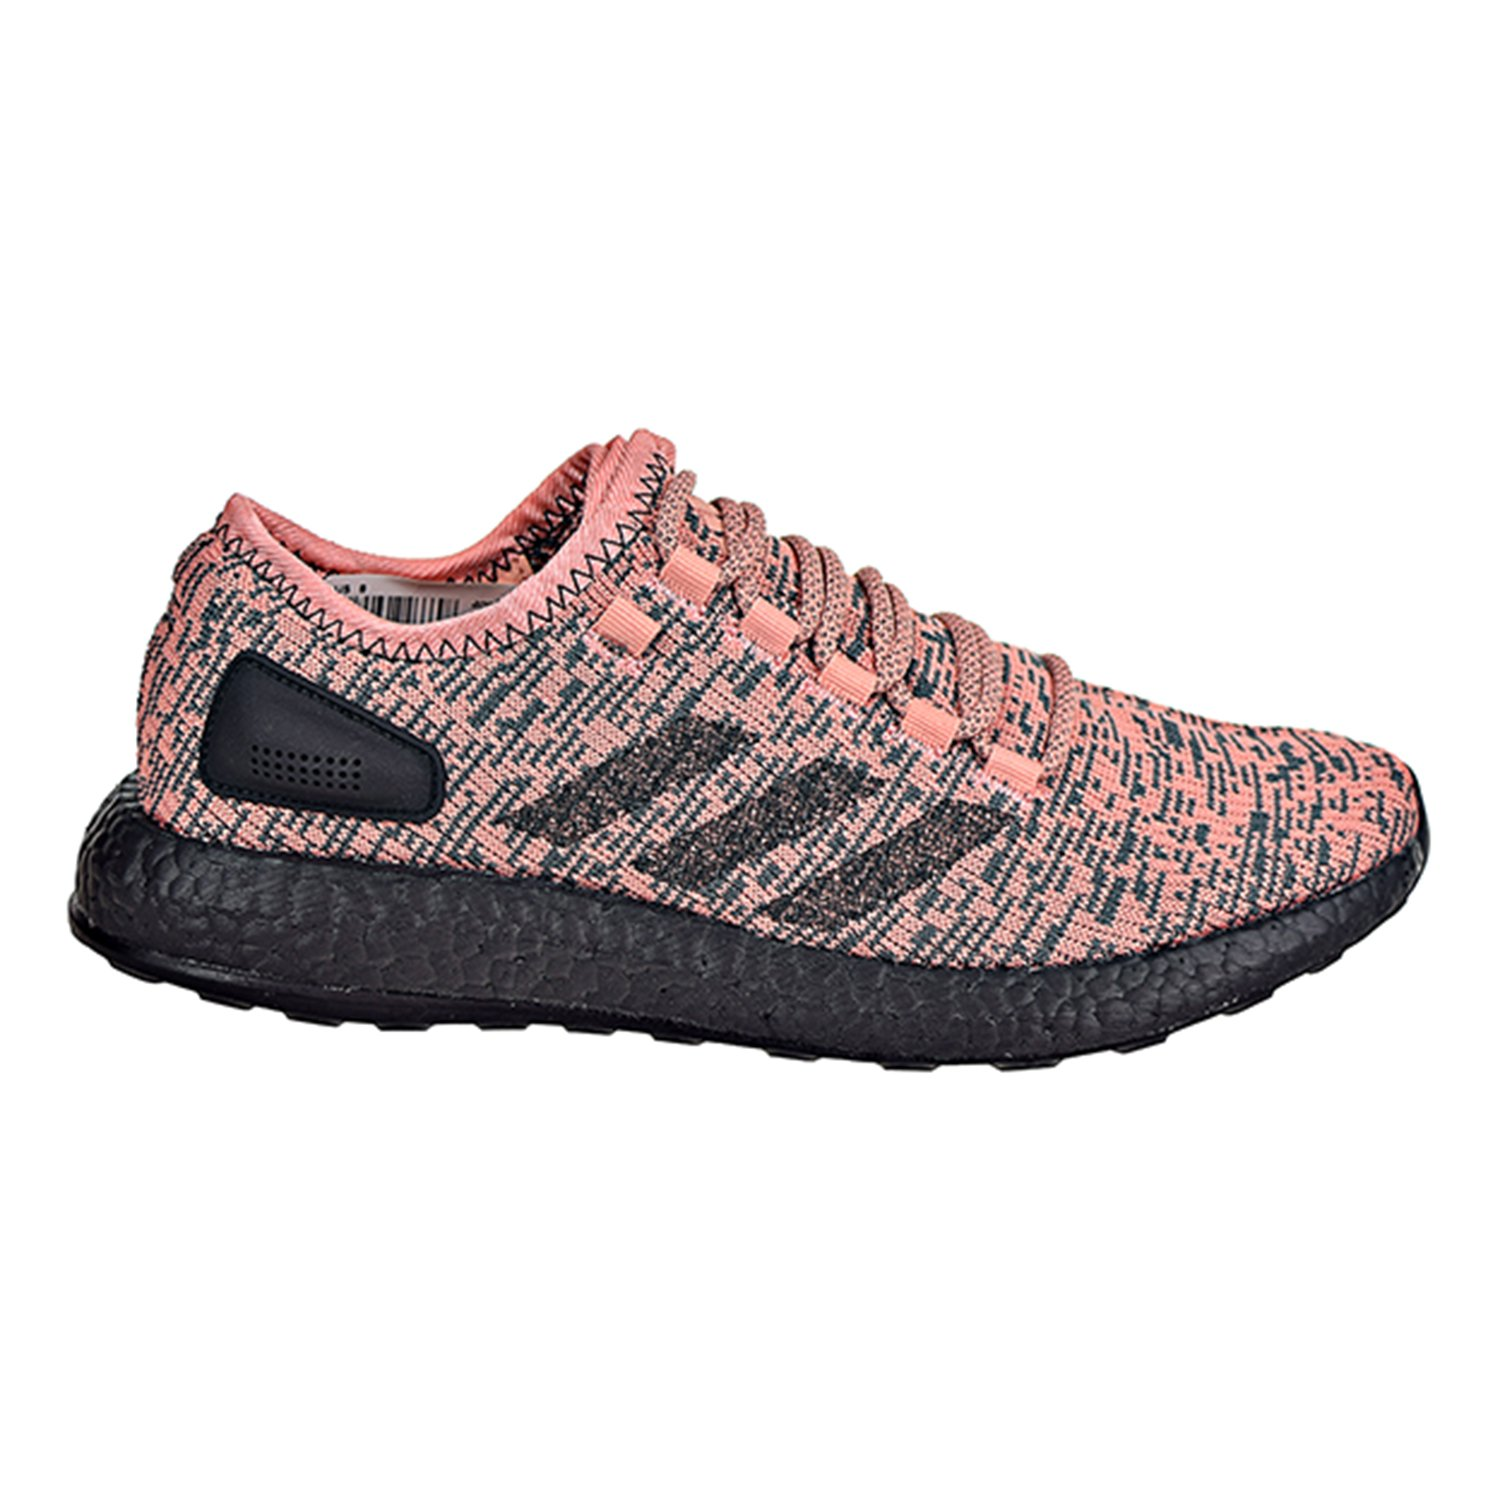 adidas Performance Men's Pureboost Running Shoe B0785VVCQB 6.5 D(M) US|Metallic Trace Pink/Core Black/Core Black